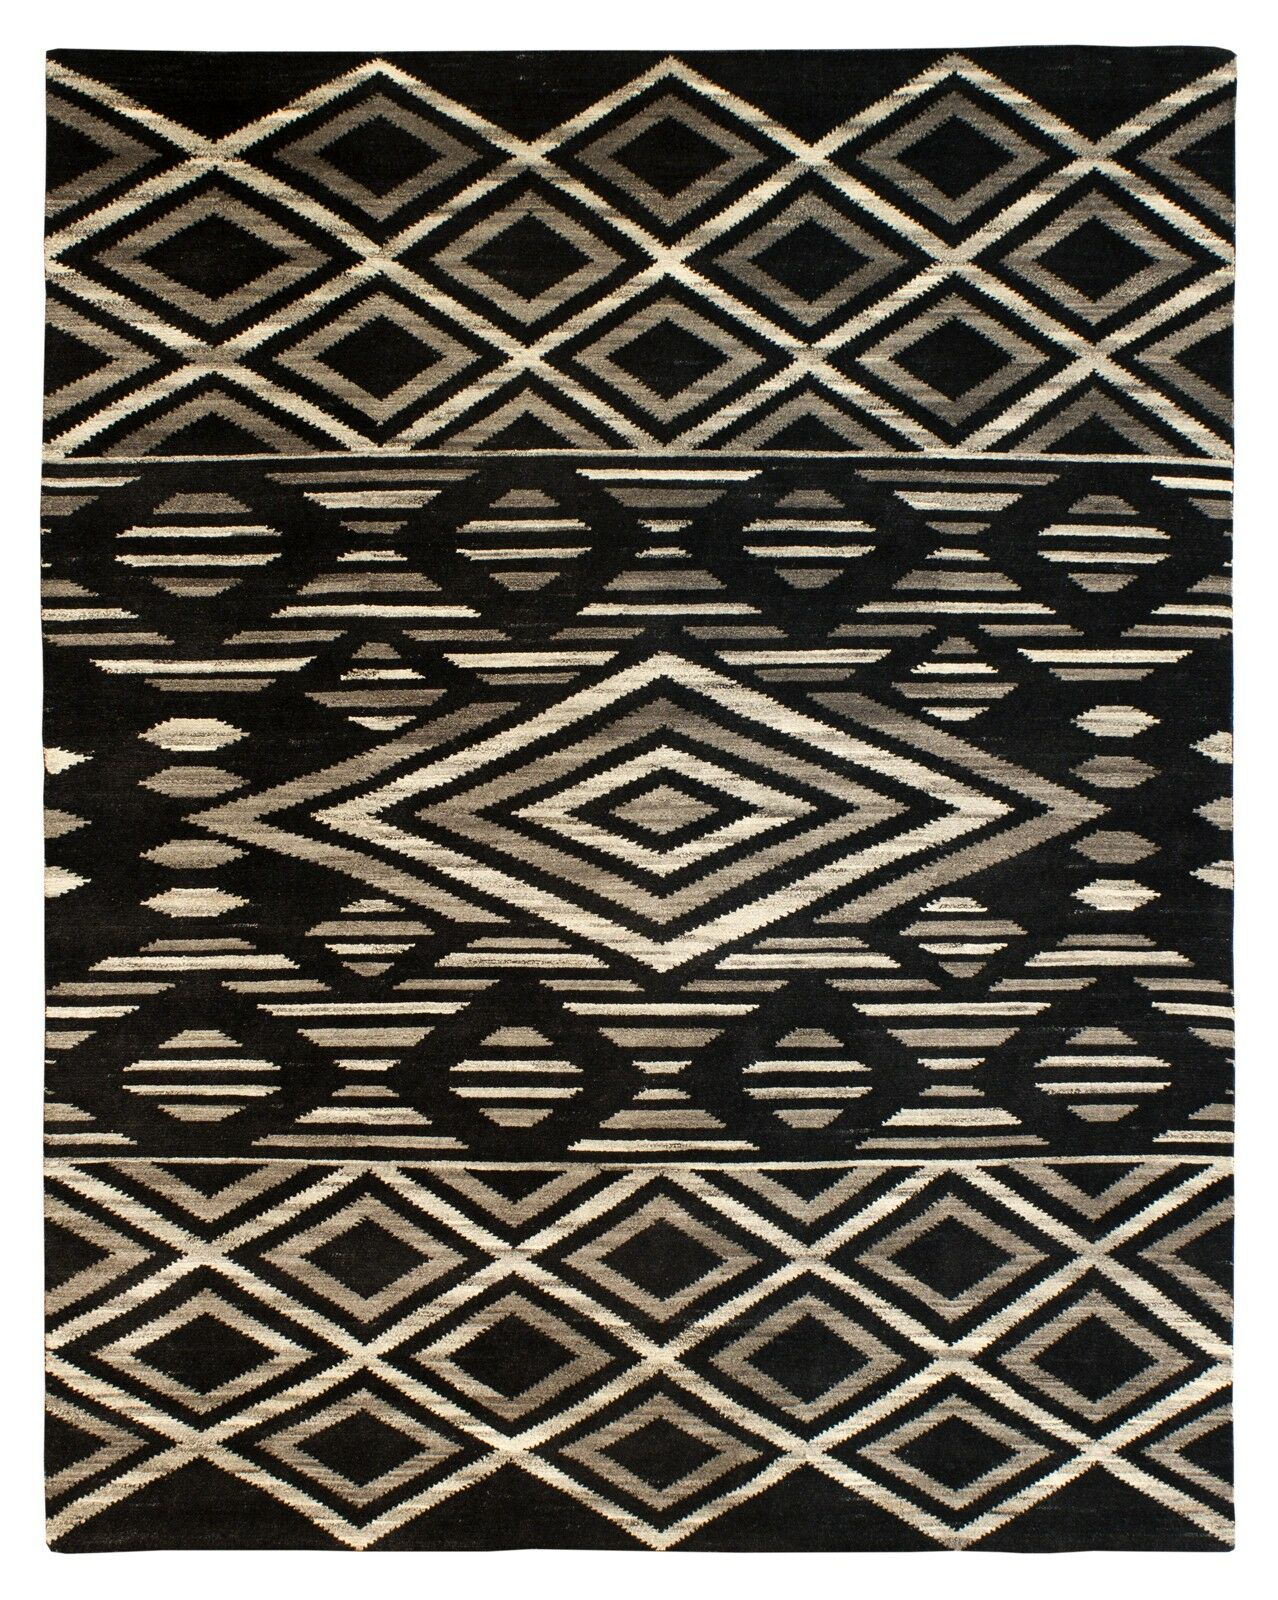 Rochester Hand-Knotted Wool Black Area Rug Rug Size: Rectangle 8' x 10'